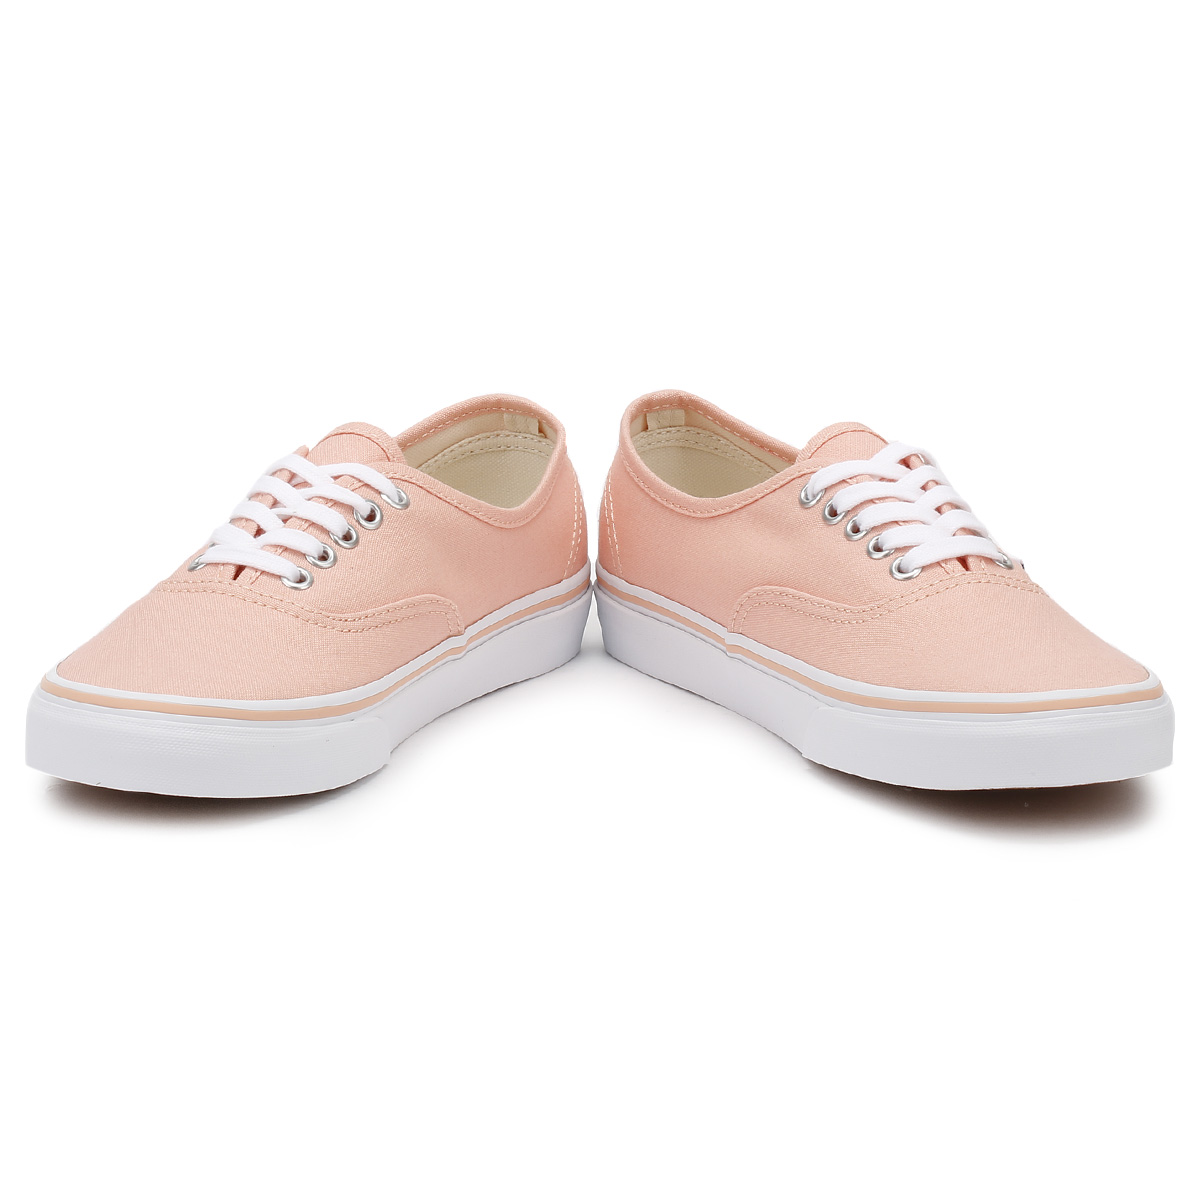 Vans-Authentic-Womens-Trainers-Tropical-Peach-True-White-